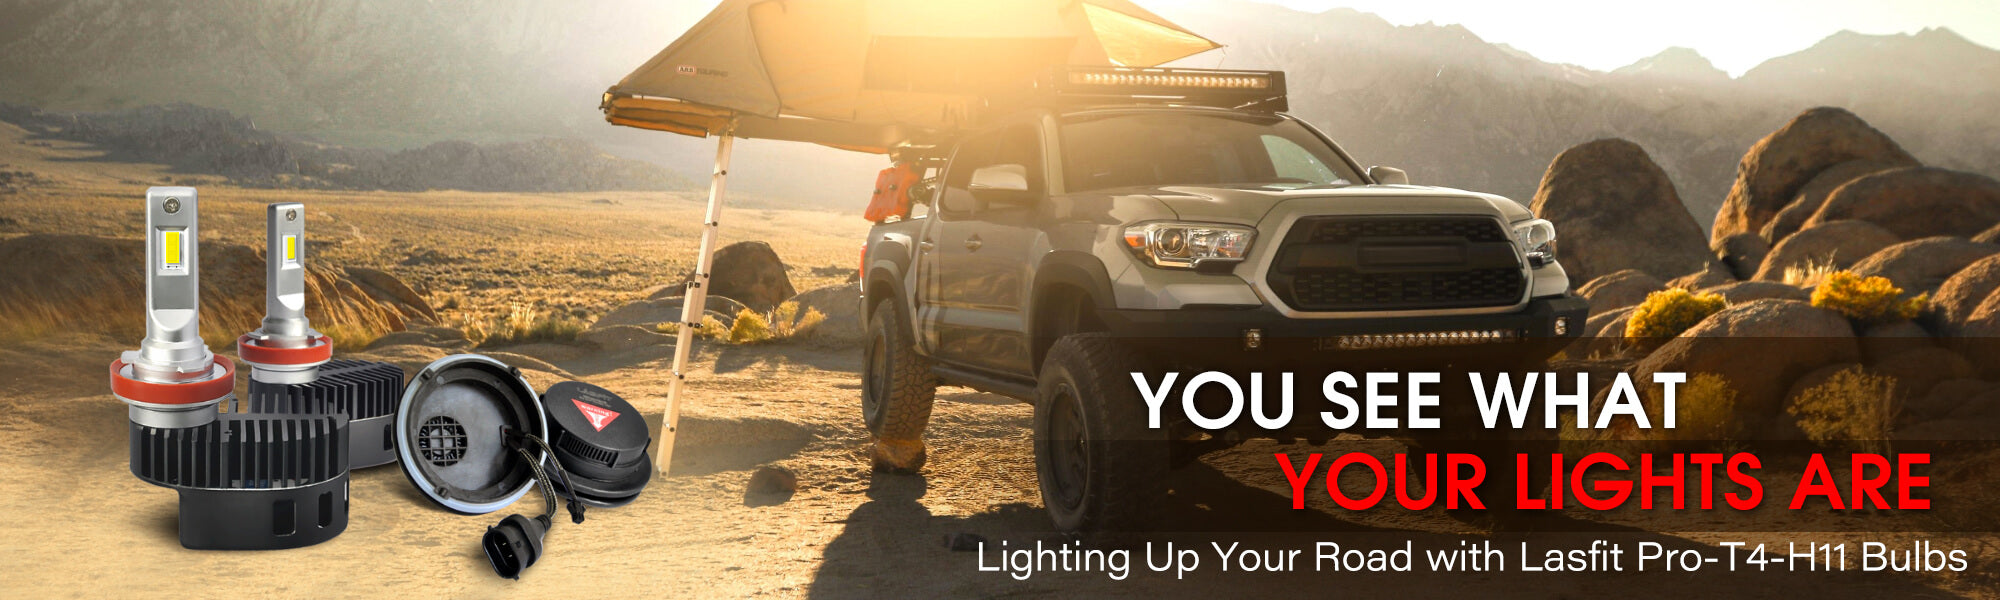 custom 4runner headlight bulbs